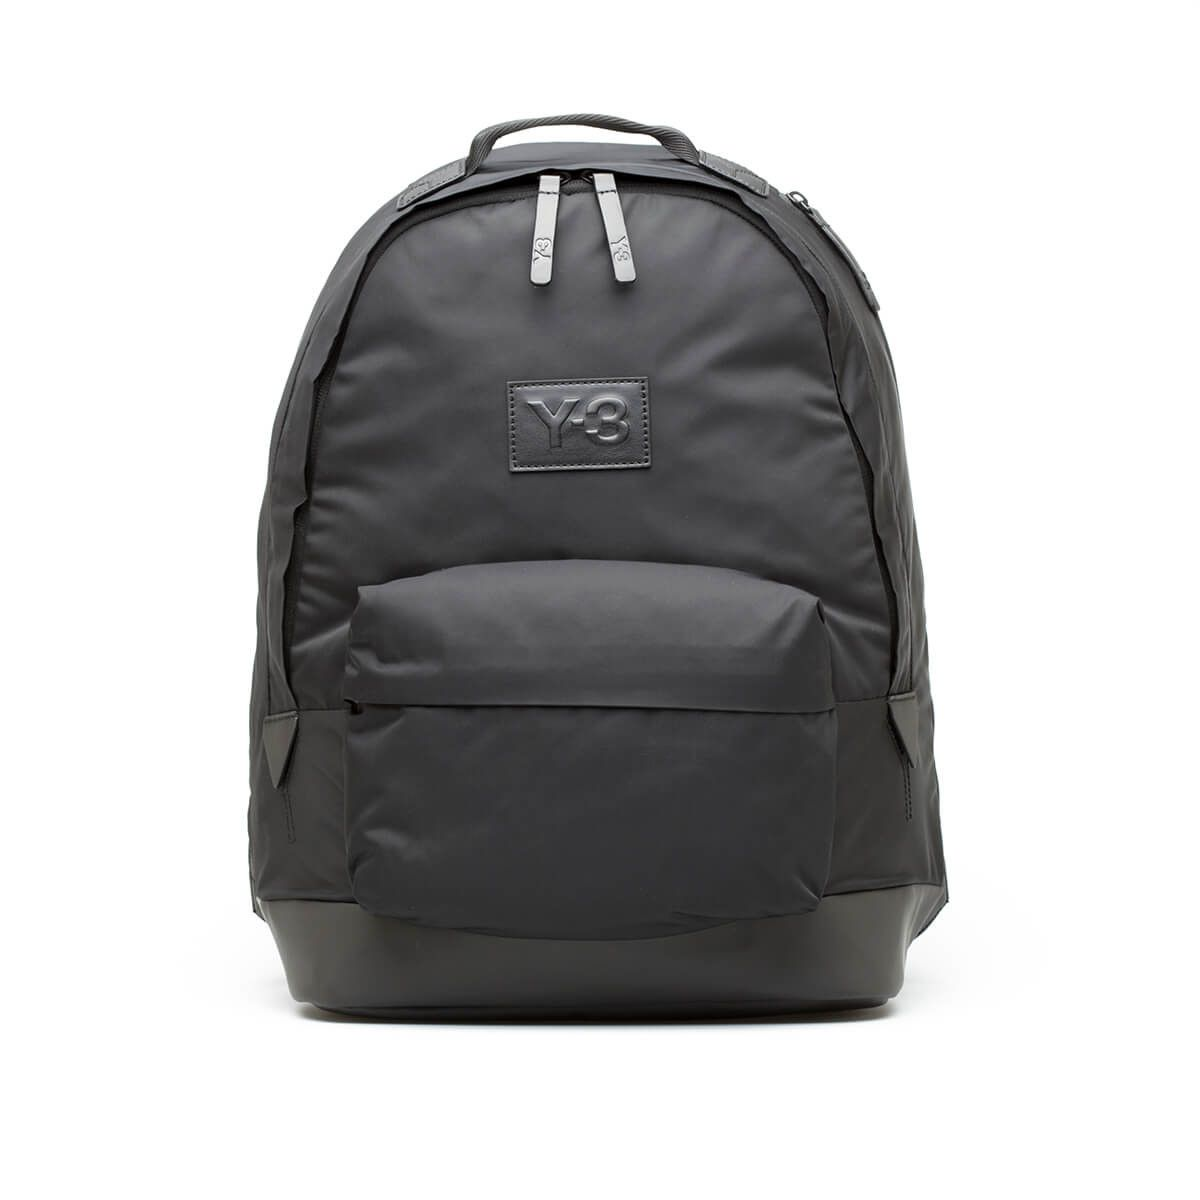 Techlite backpack from the F W2017-18 Y-3 by Yohji Yamamoto collection deaca1df00b58